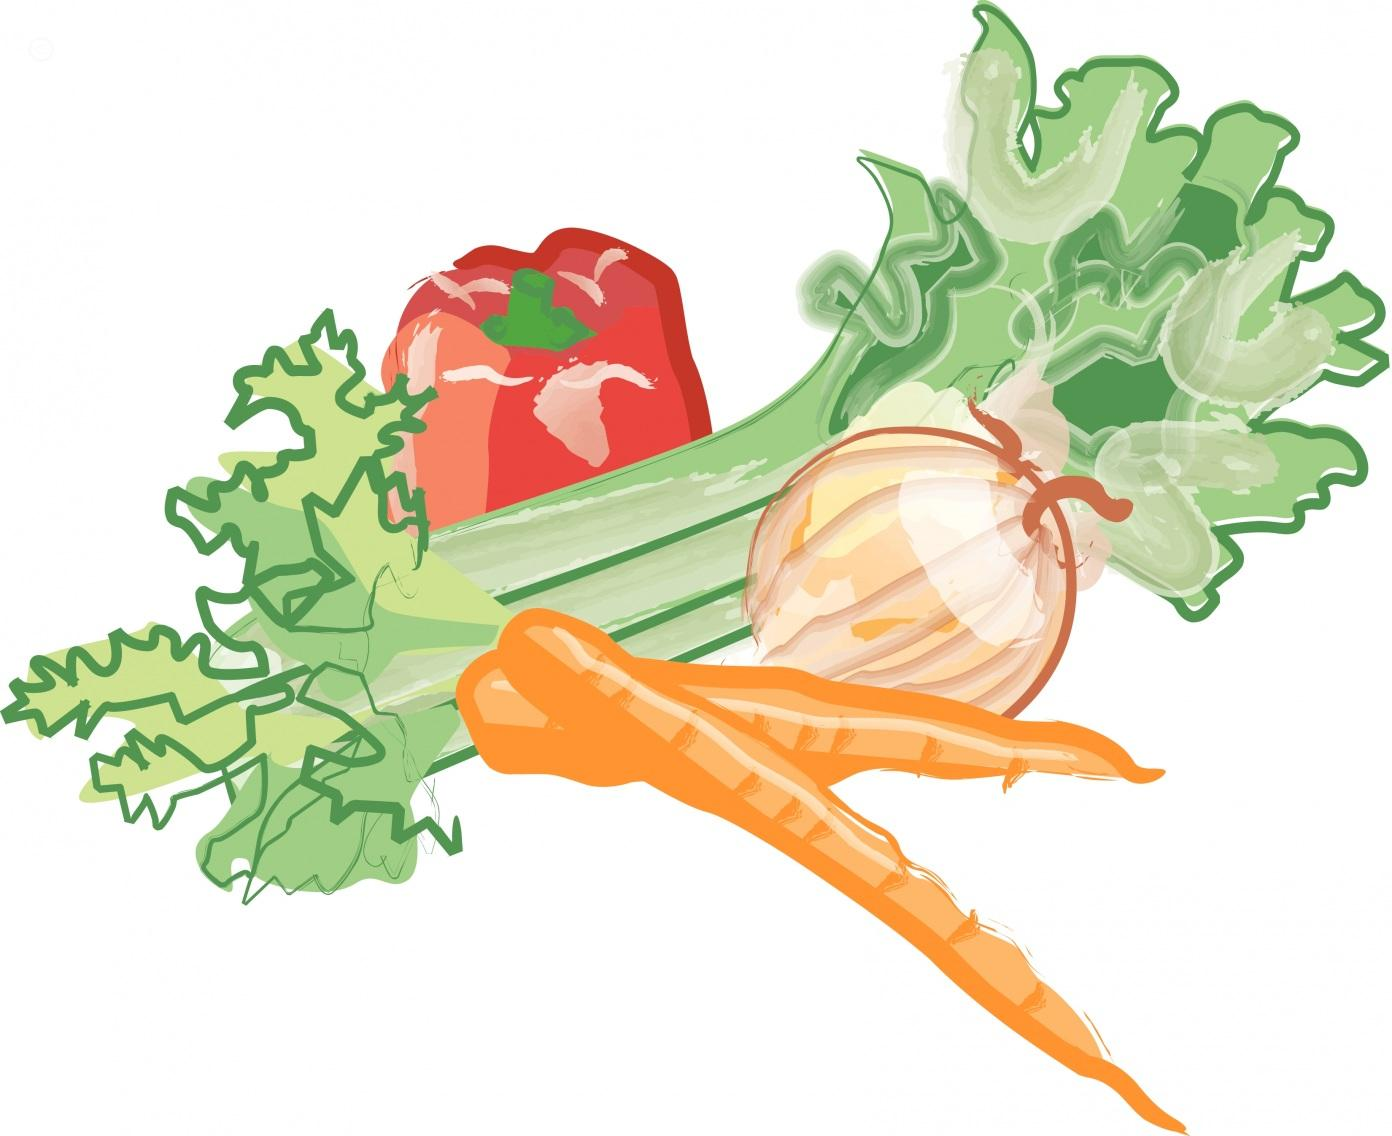 free vector vegetables clipart - photo #46